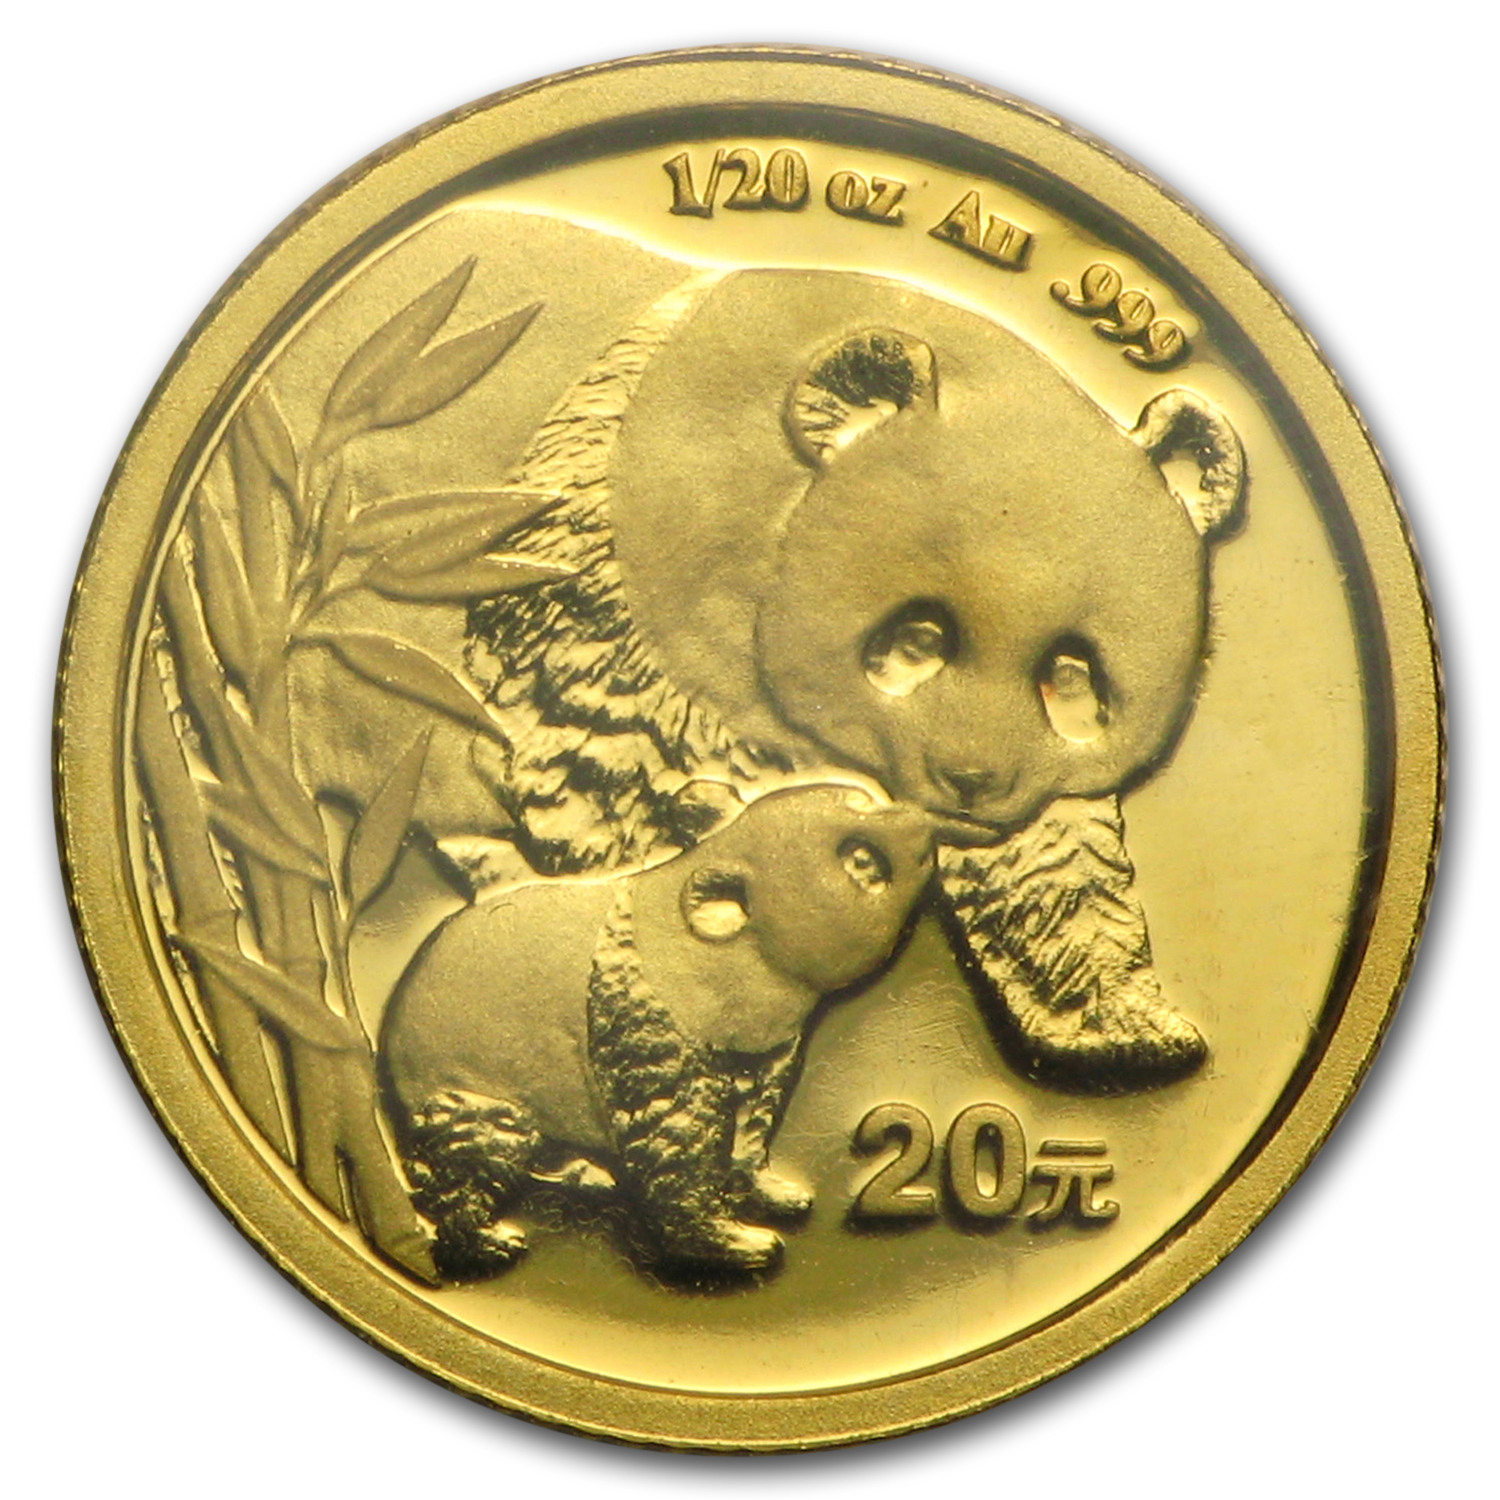 2004 China 1/20 oz Gold Panda BU (Sealed)